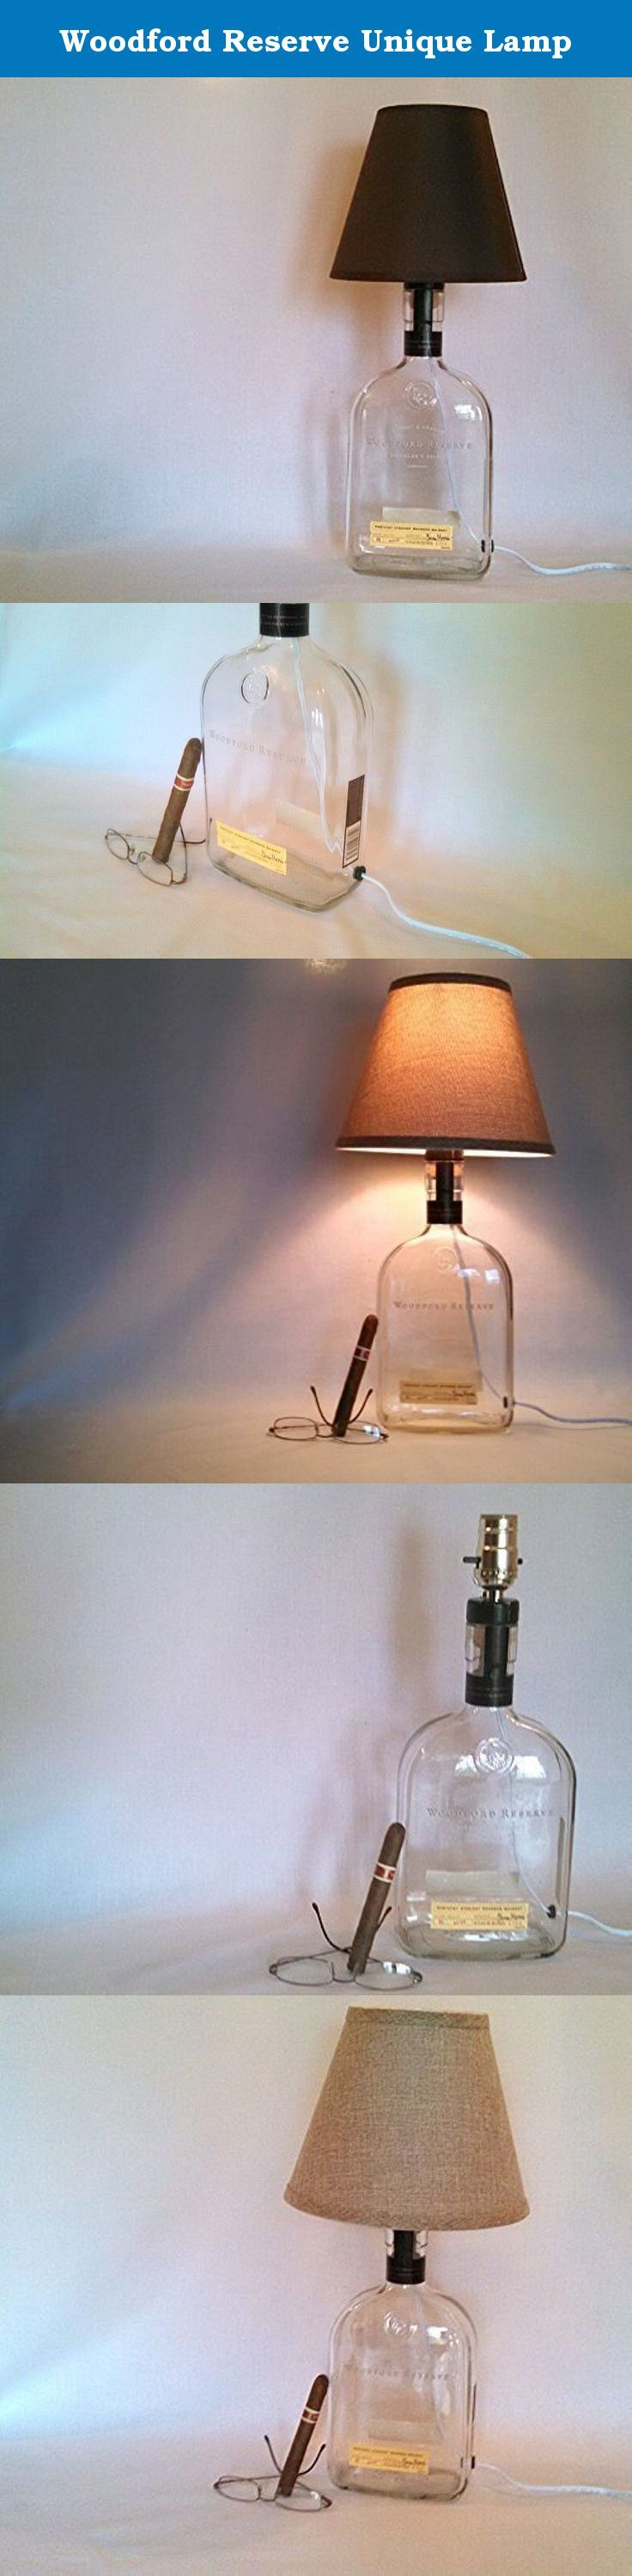 Woodford Reserve Unique Lamp. This Lamp would make the perfect gift to the person who has everything. This 1.75L bottle has been repurposed into a lamp, saving the bottle from the landfill. This lamp gives enough light to see what is on your desk or to light up a hall. This lamp is made from an 1.75L liquor bottle. You choose brown, black or burlap lamp shade. You may also have no lamp shade. Small details have been added such the rubber seal on the back to protect the cord from glass cut...